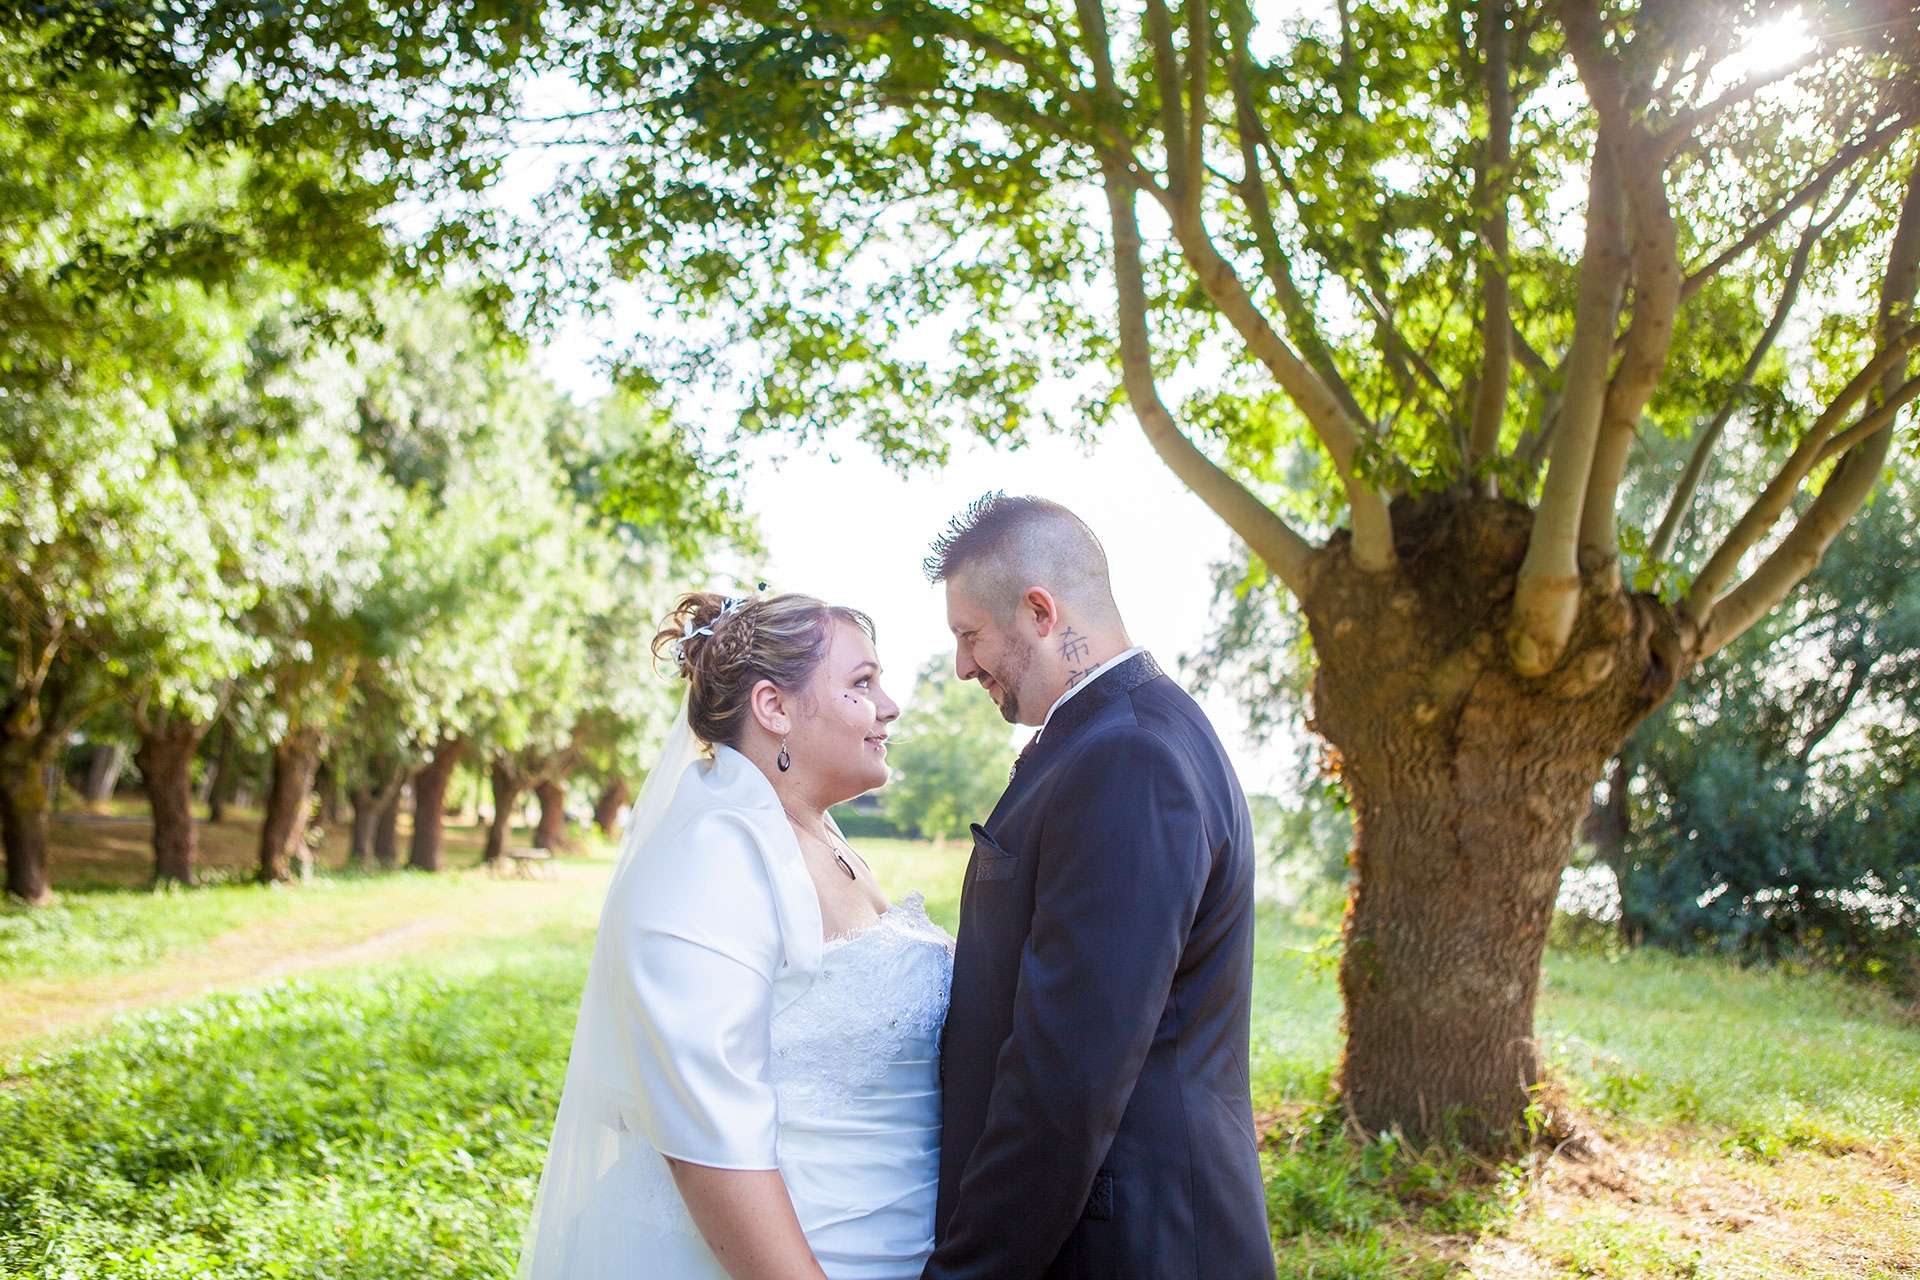 particuliers-evenements-mariages-oui-elodie&wilson-16